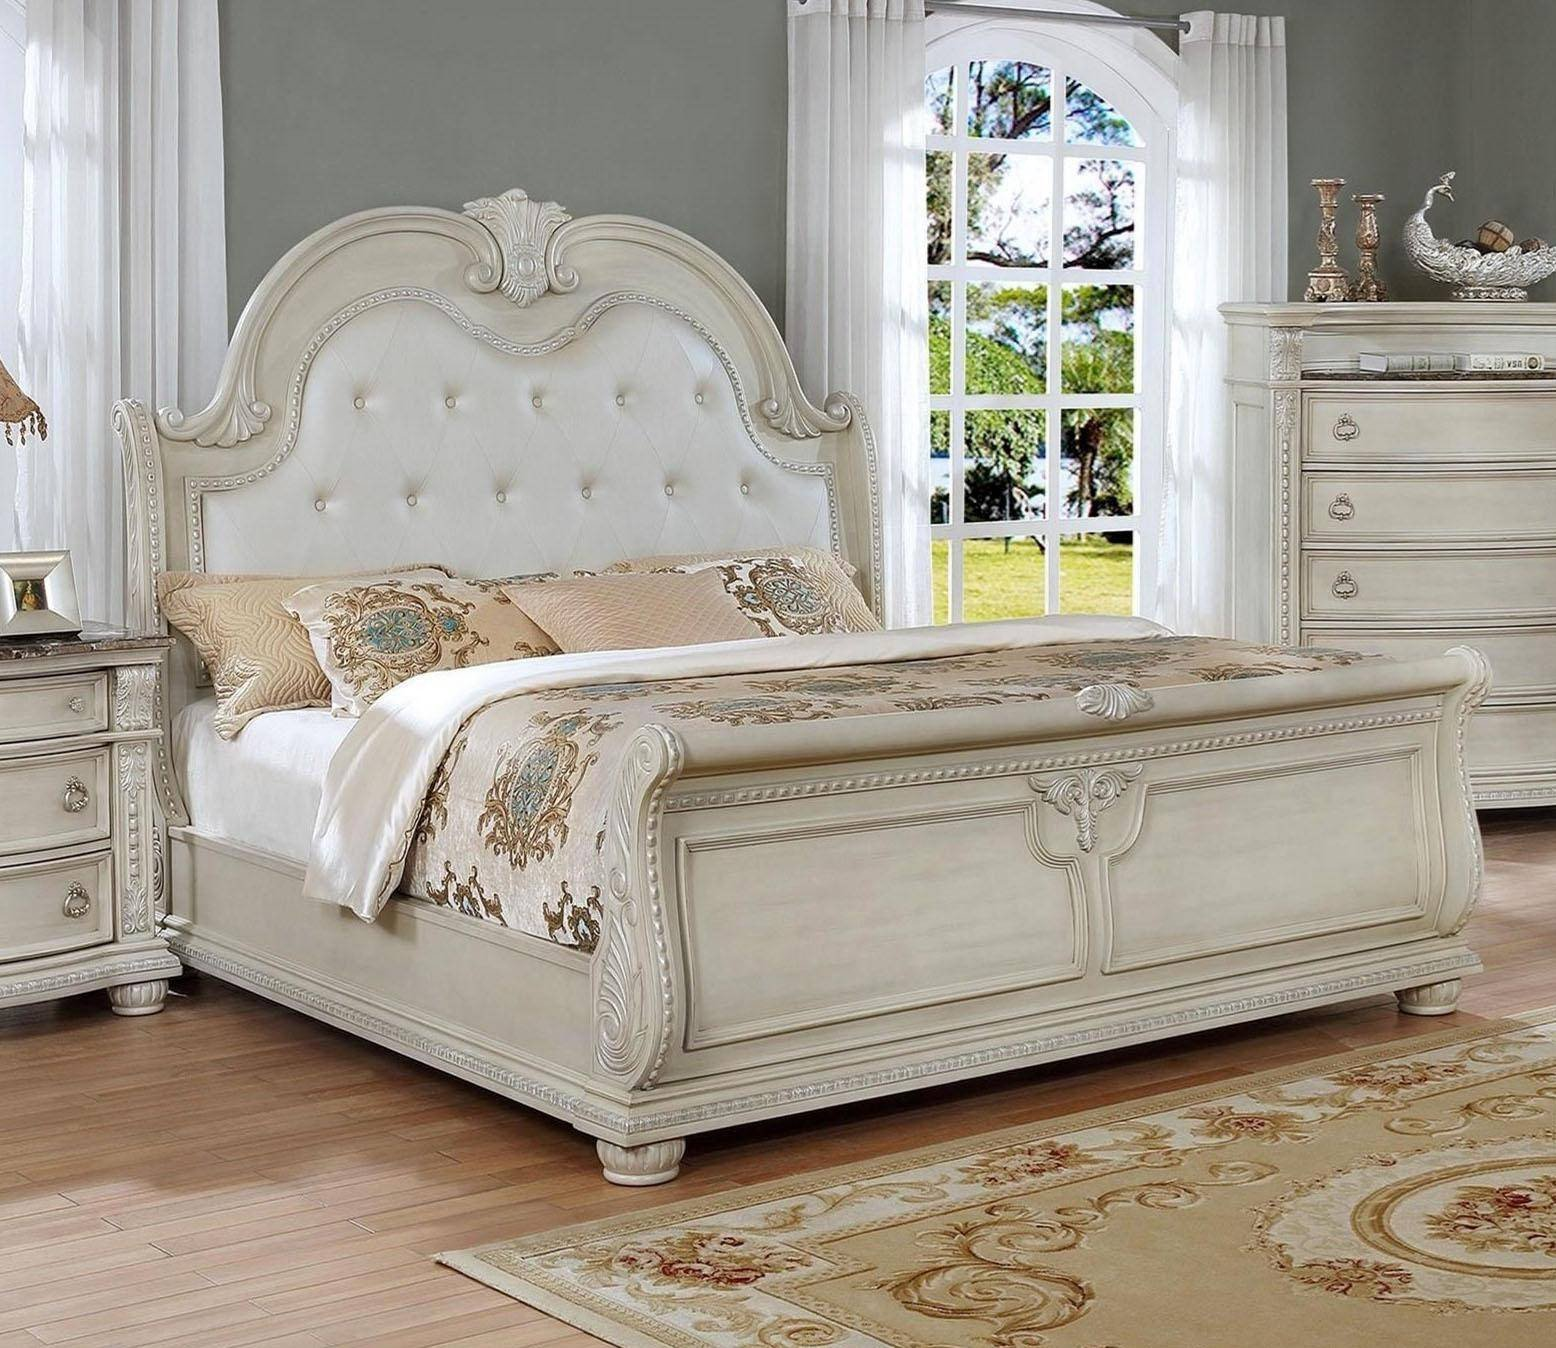 Rooms to Go Bedroom Set King Elegant Crown Mark B1630 Stanley Antique White solid Wood King